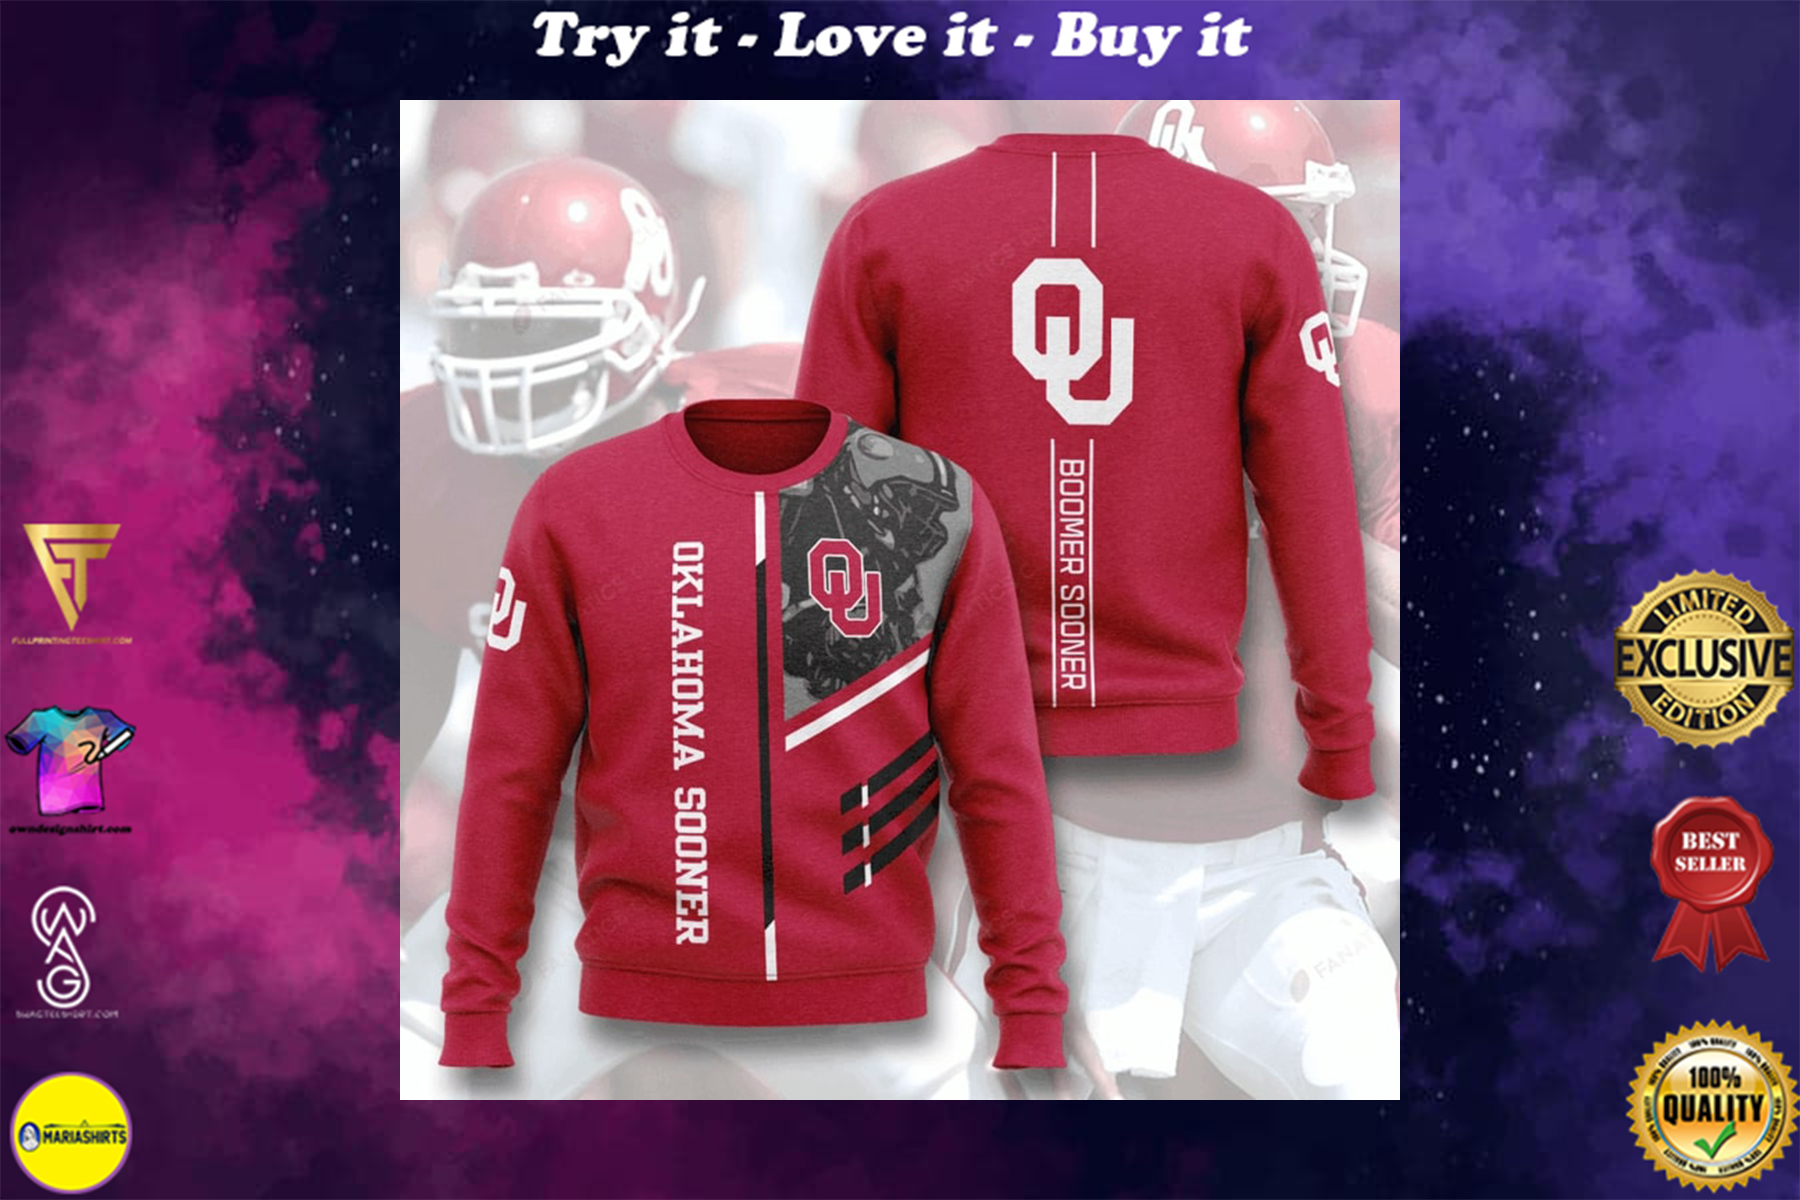 [special edition] oklahoma sooners boomer sooner full printing ugly sweater - maria